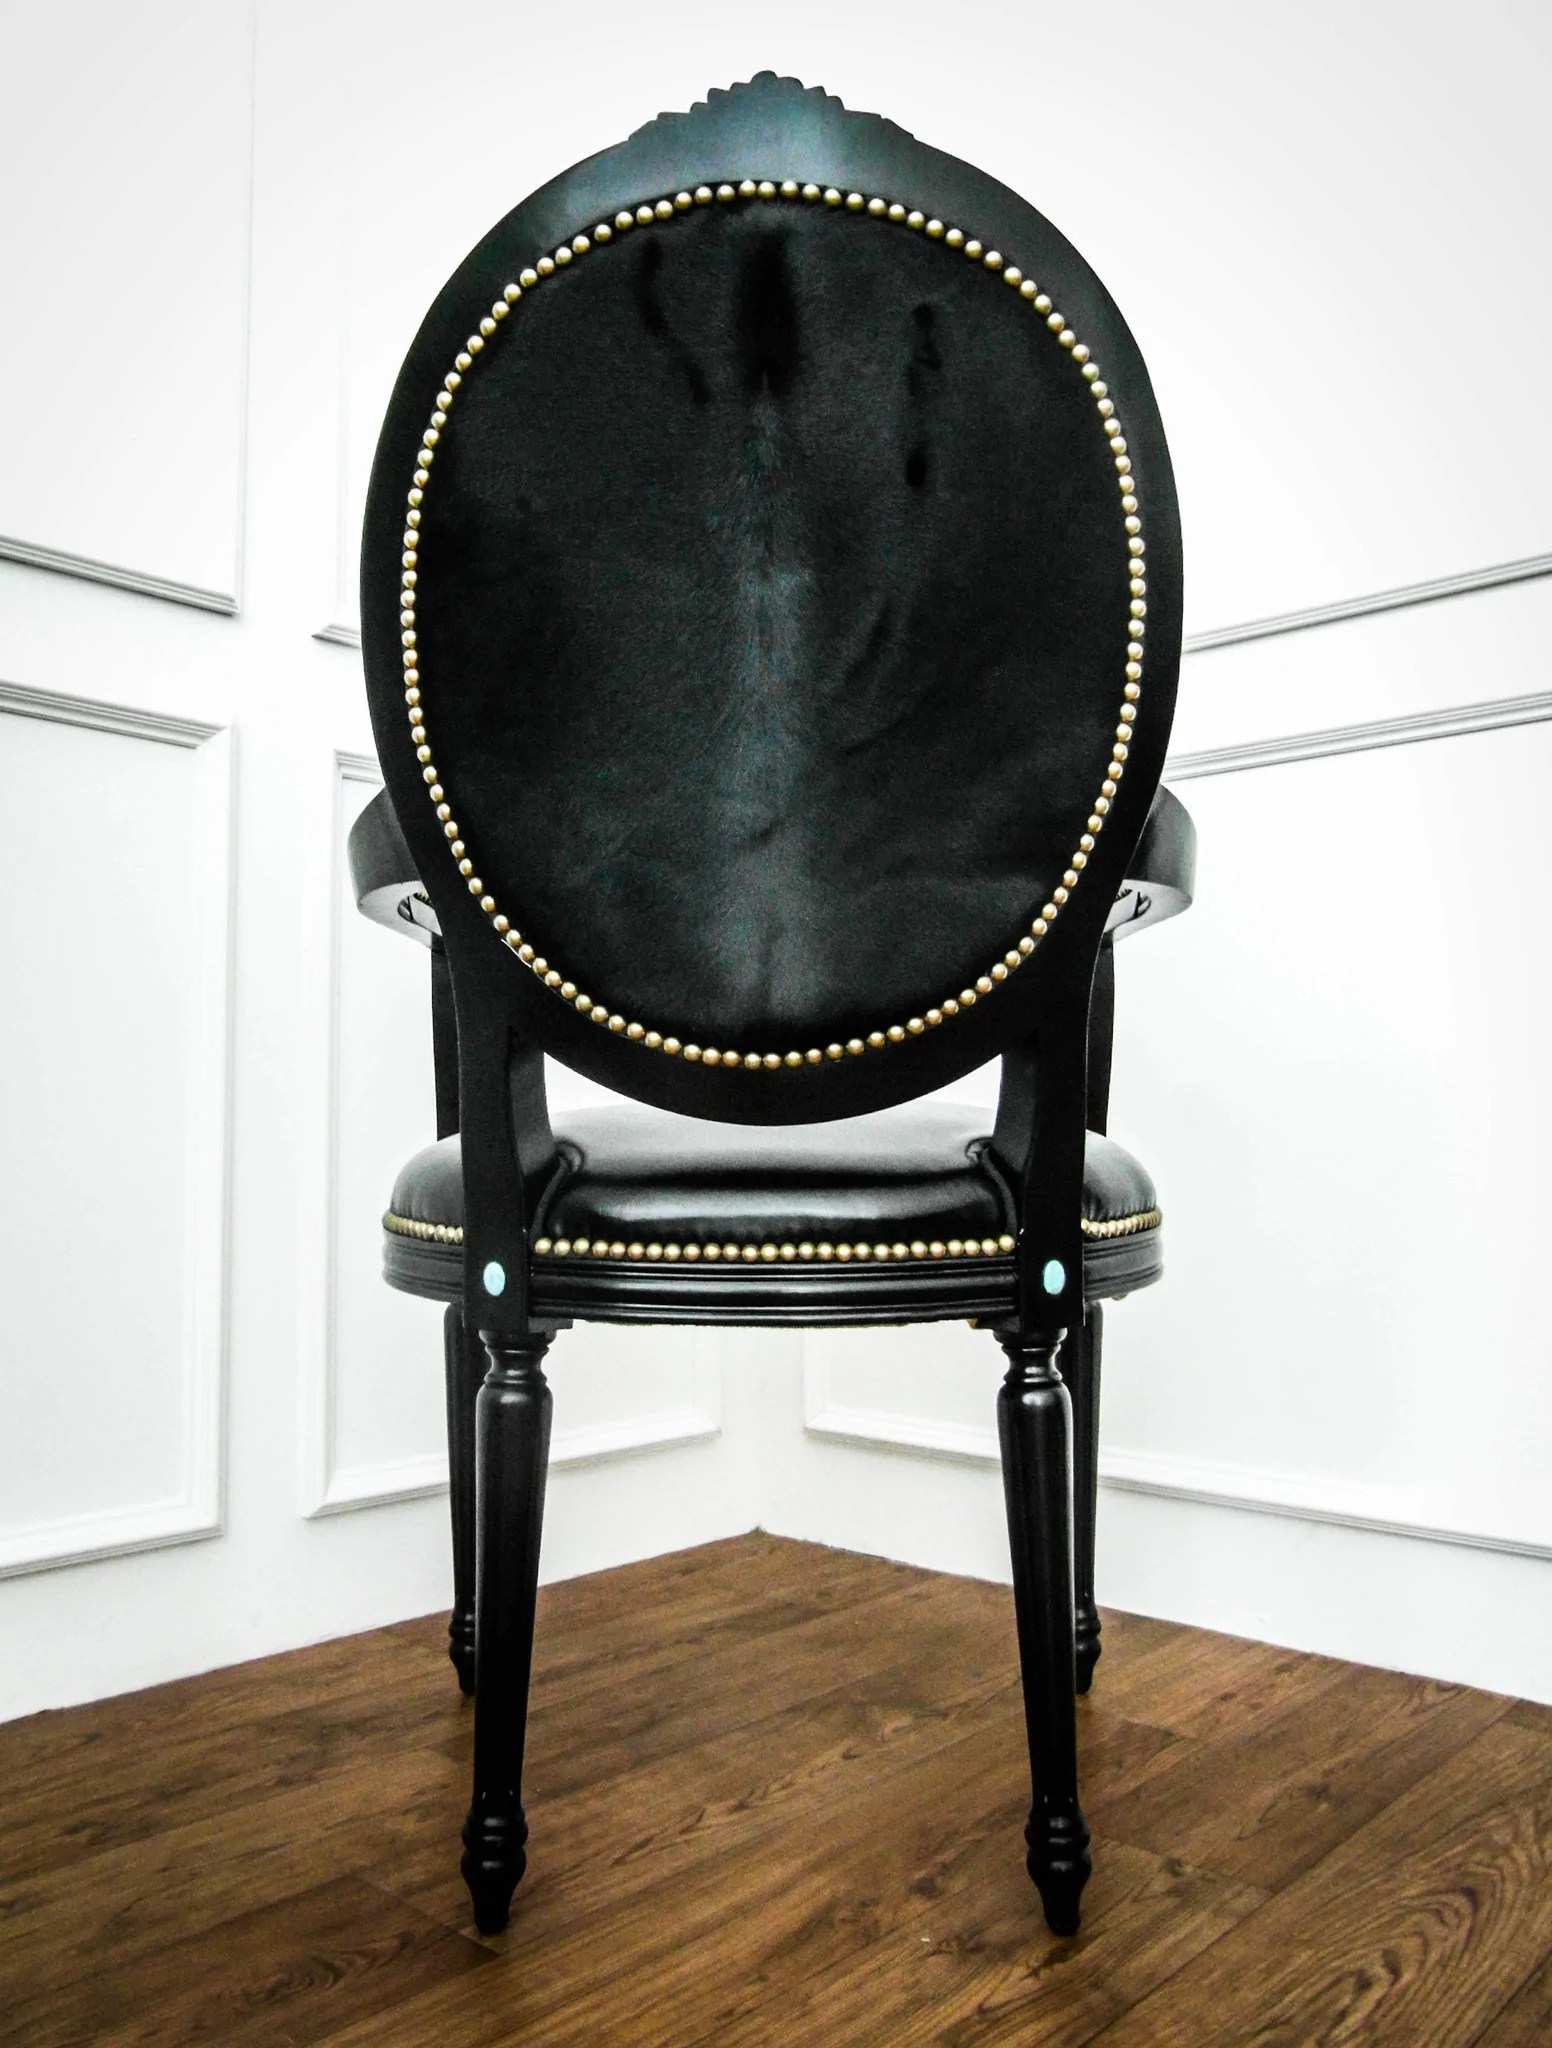 king furniture dining chairs steelcase leap chair with headrest french louis xvi armchair black finnavenue